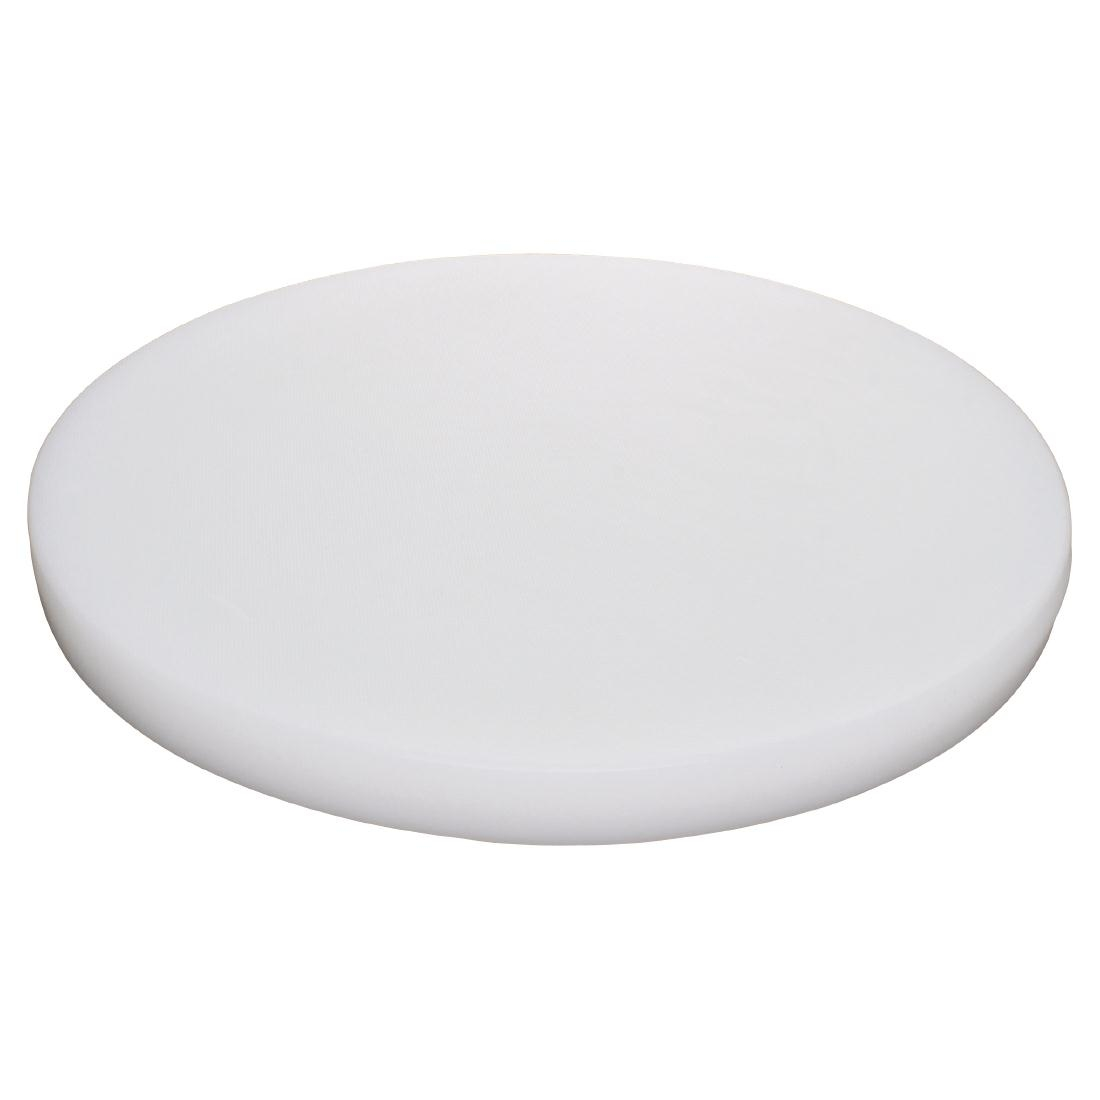 Hygiplas Round Chopping Board White 360mm